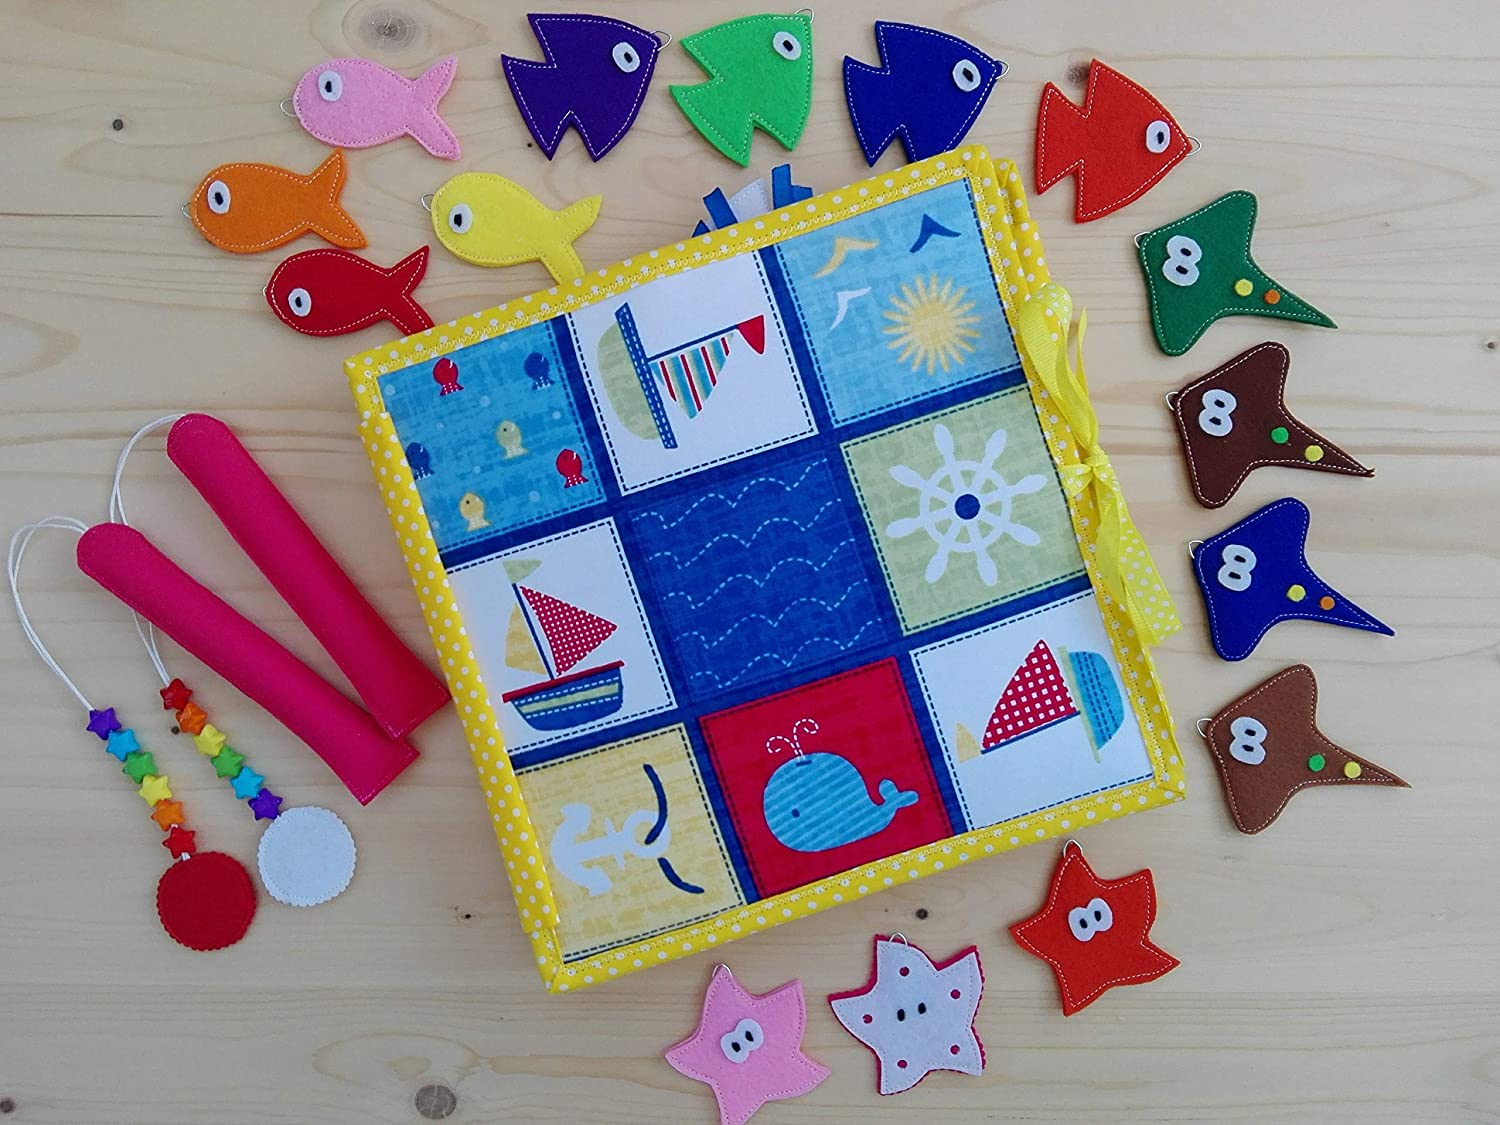 Birthday gift Quiet book Montessori toy Busy book Felt toy Sensory toy for toddlers Magnetic fishing game Felt fishing game